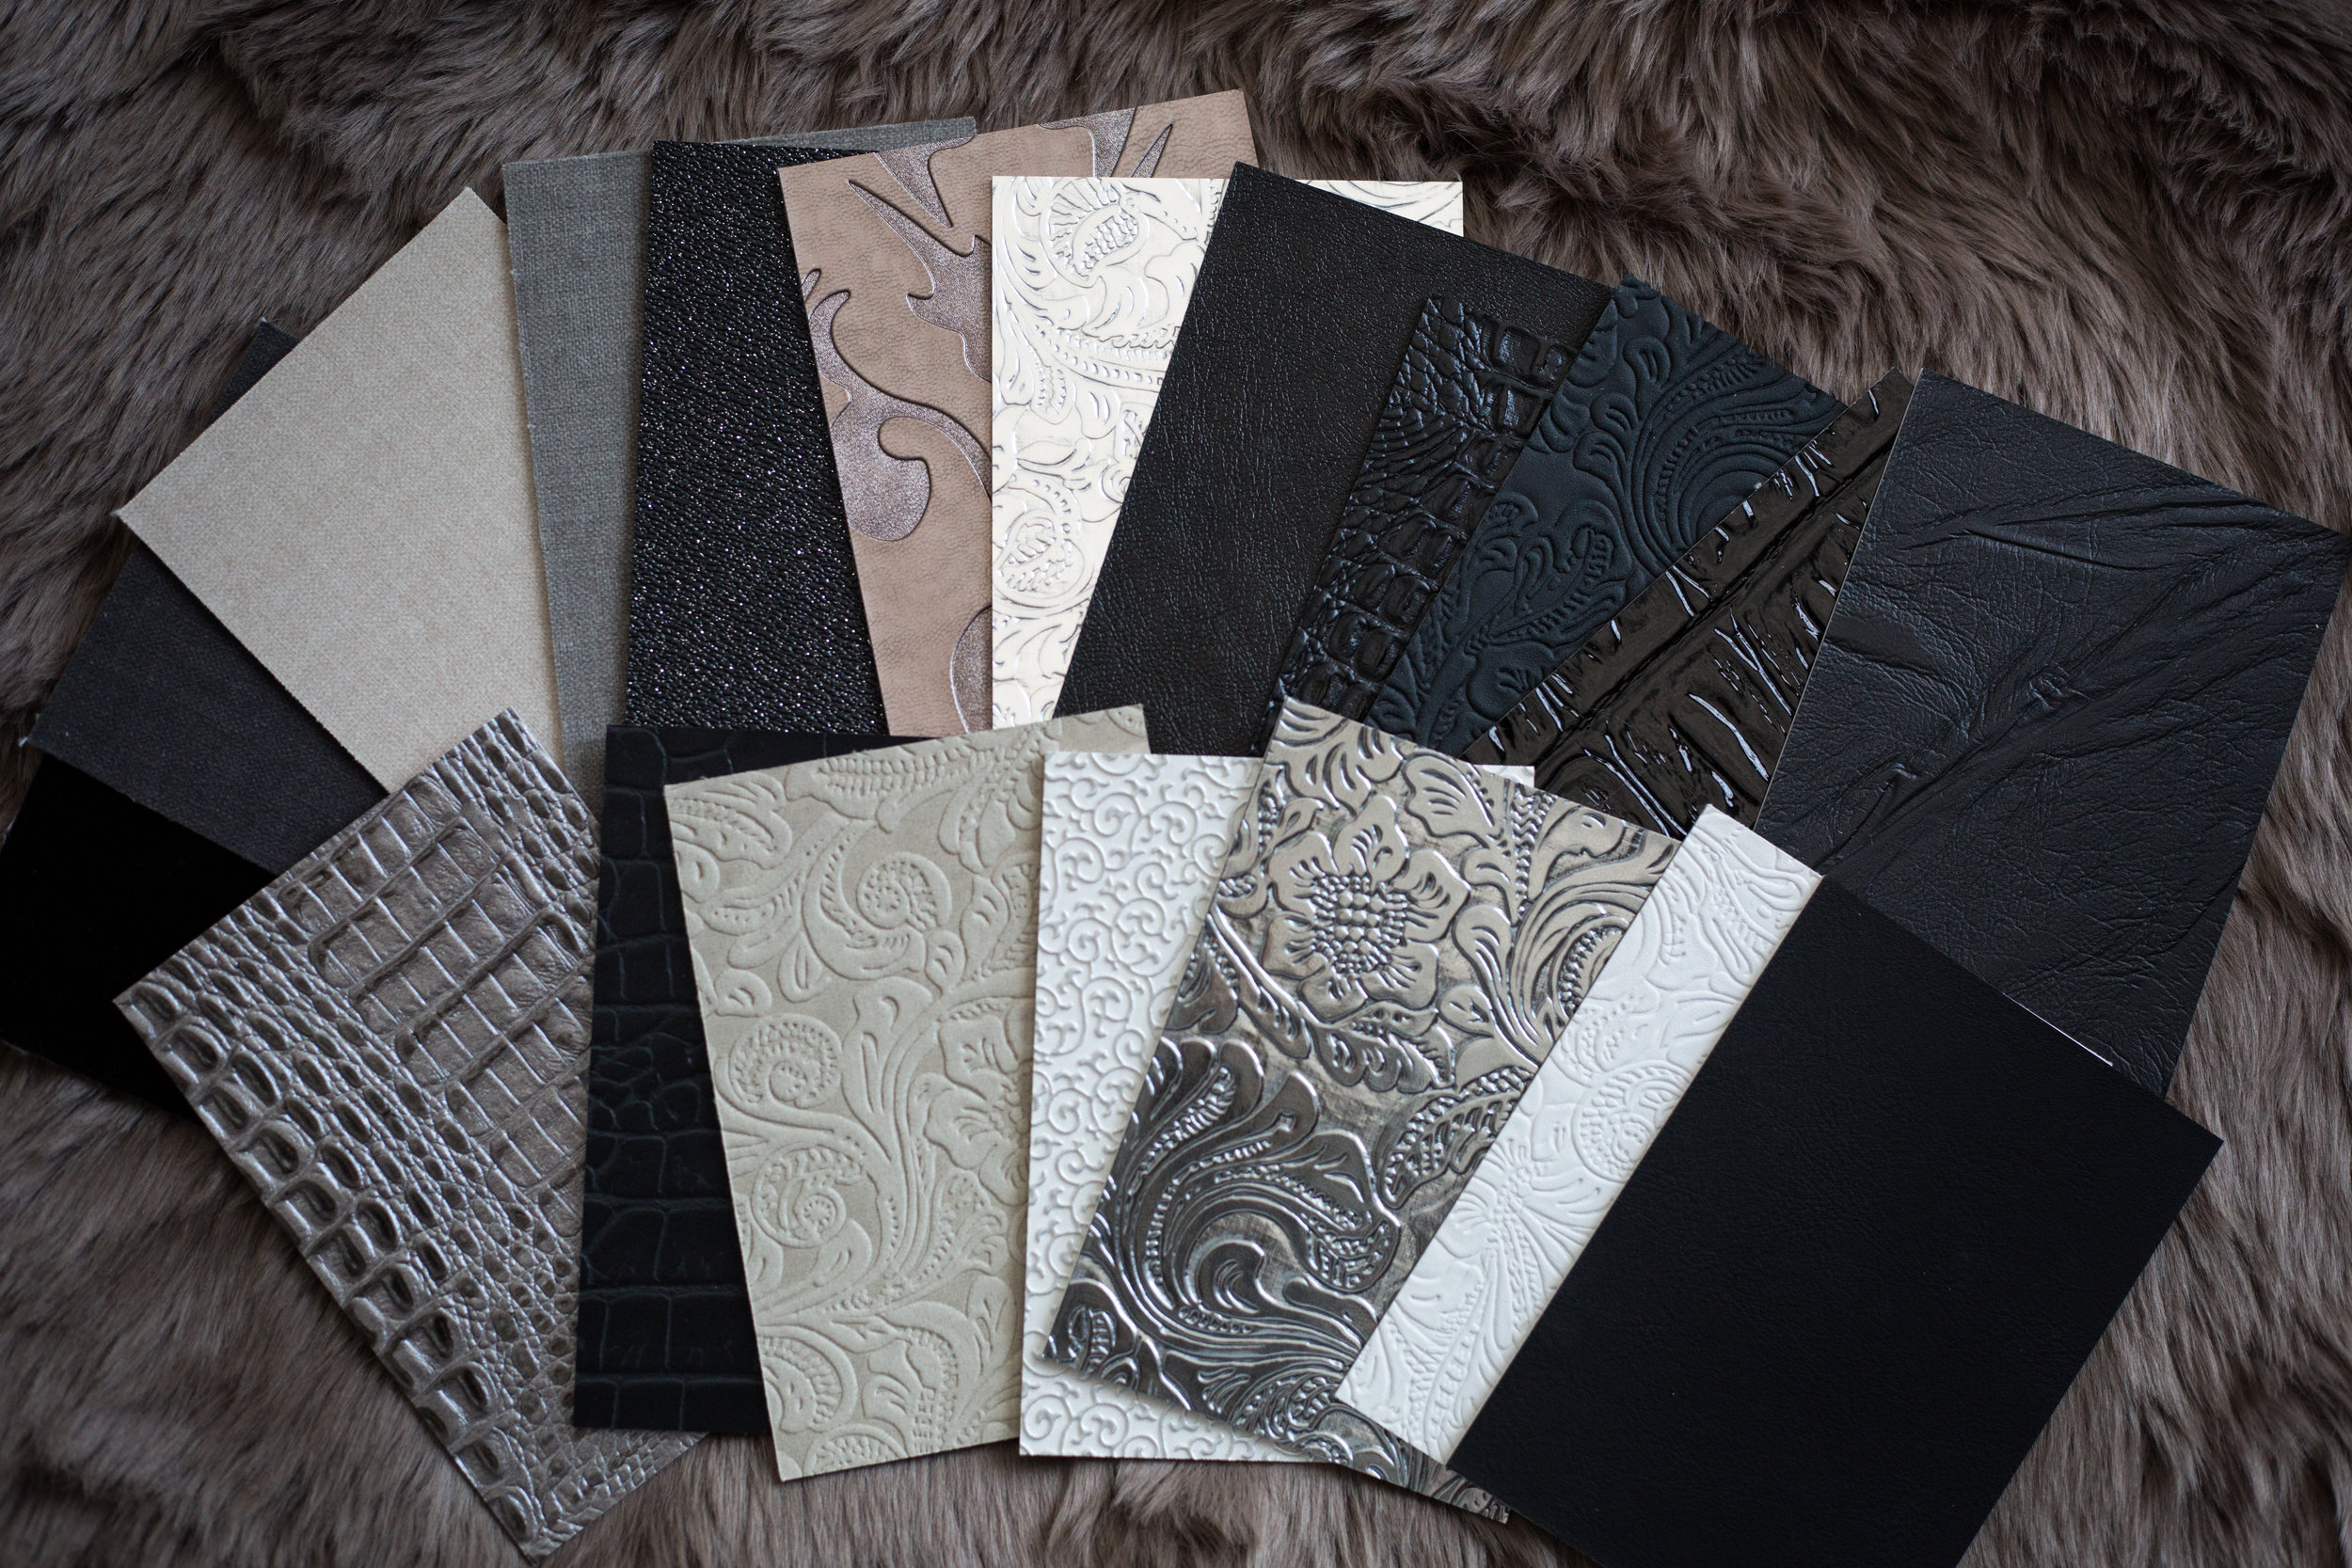 Alll the cover options. Sexy blacks, sparkles, shines, suedes & velvets galore.